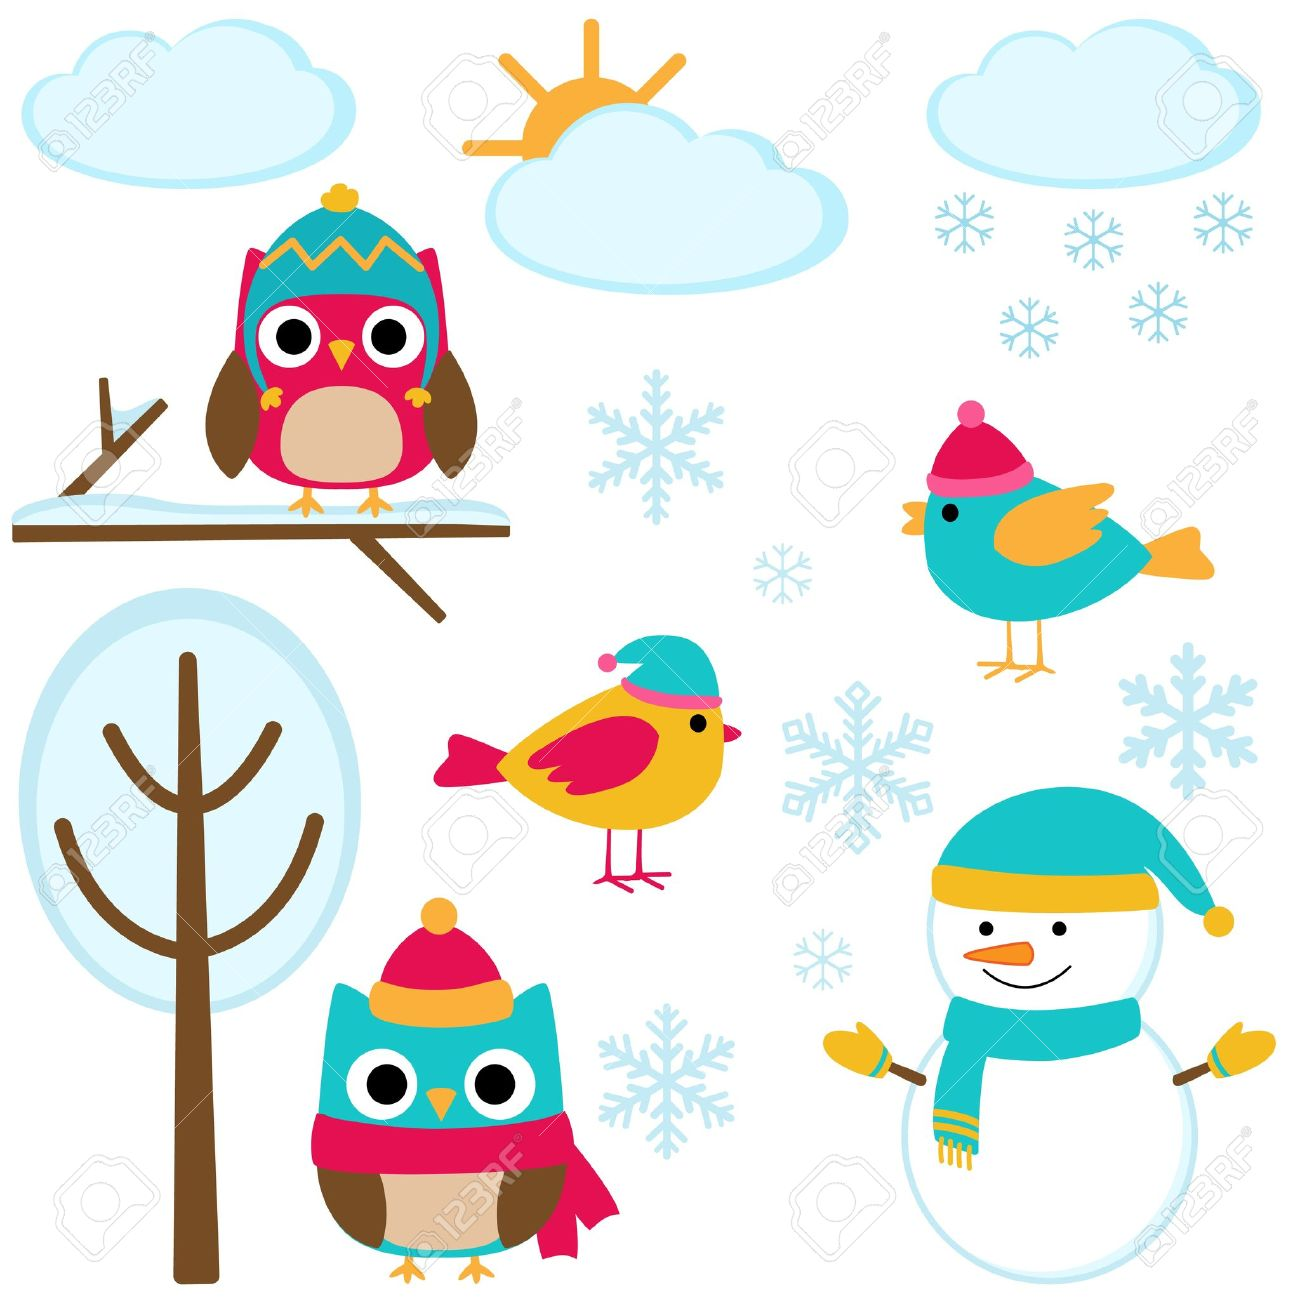 Cute winter clipart 5 » Clipart Station.